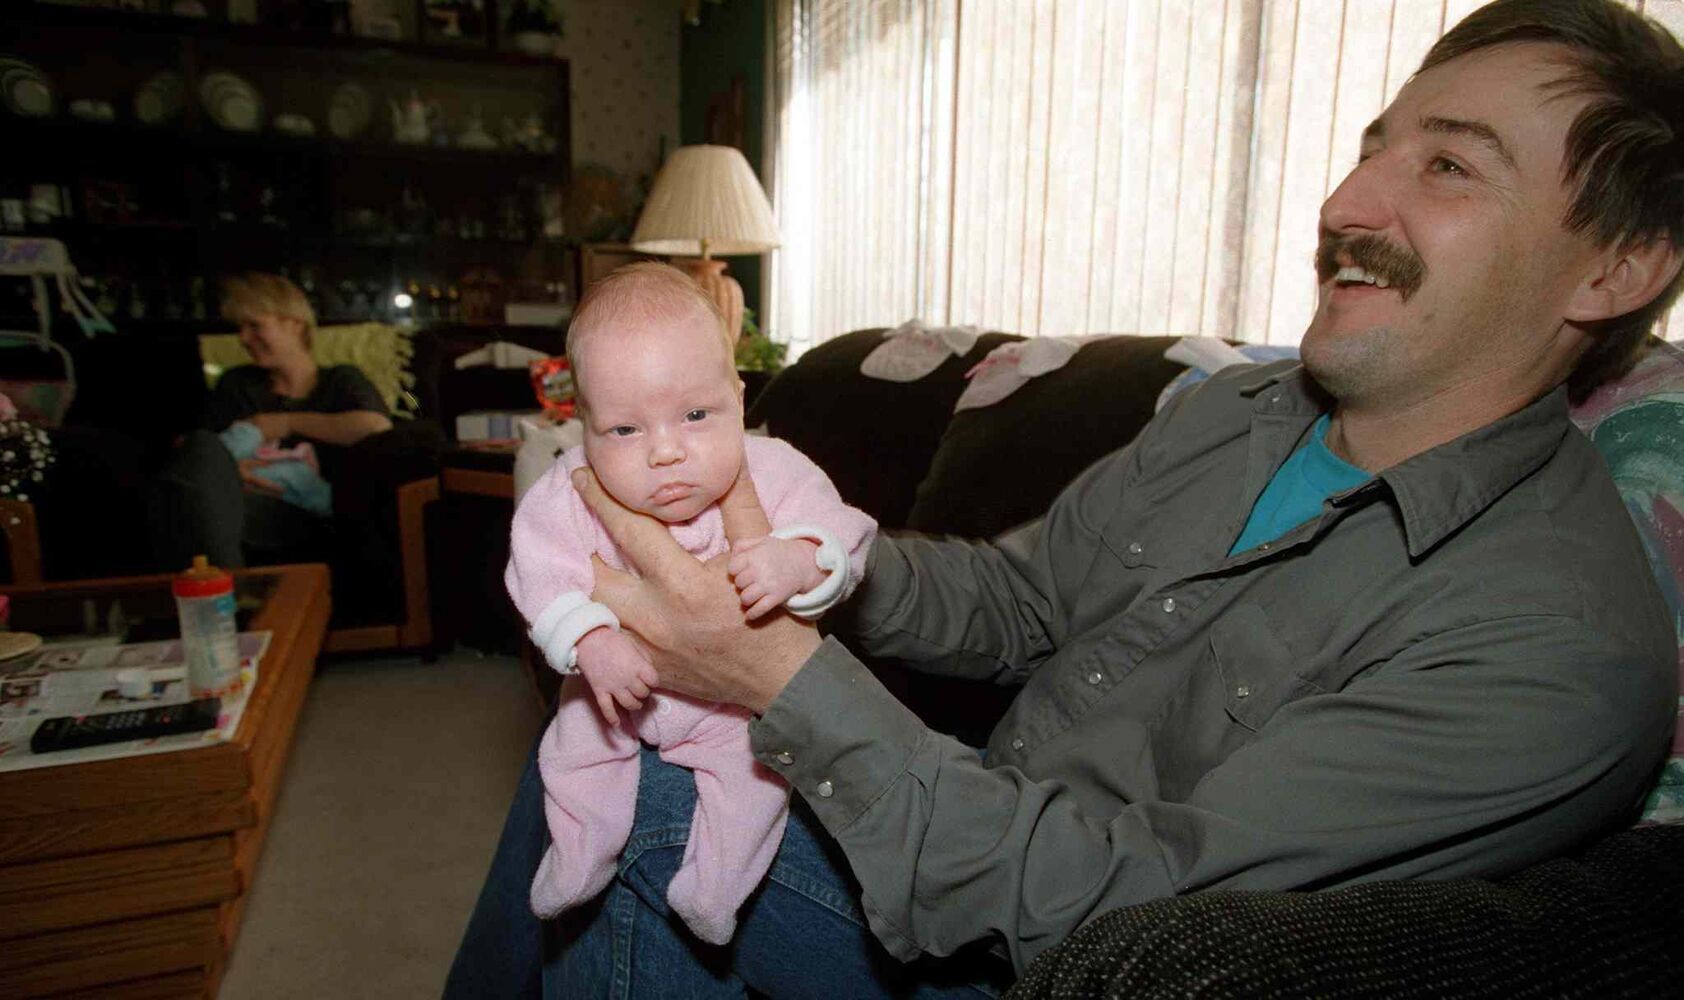 Ed Lavich reacts as Maryn burps after a feeding on Oct. 30, 1996.  (JEFF DE BOOY / WINNIPEG FREE PRESS FILES)